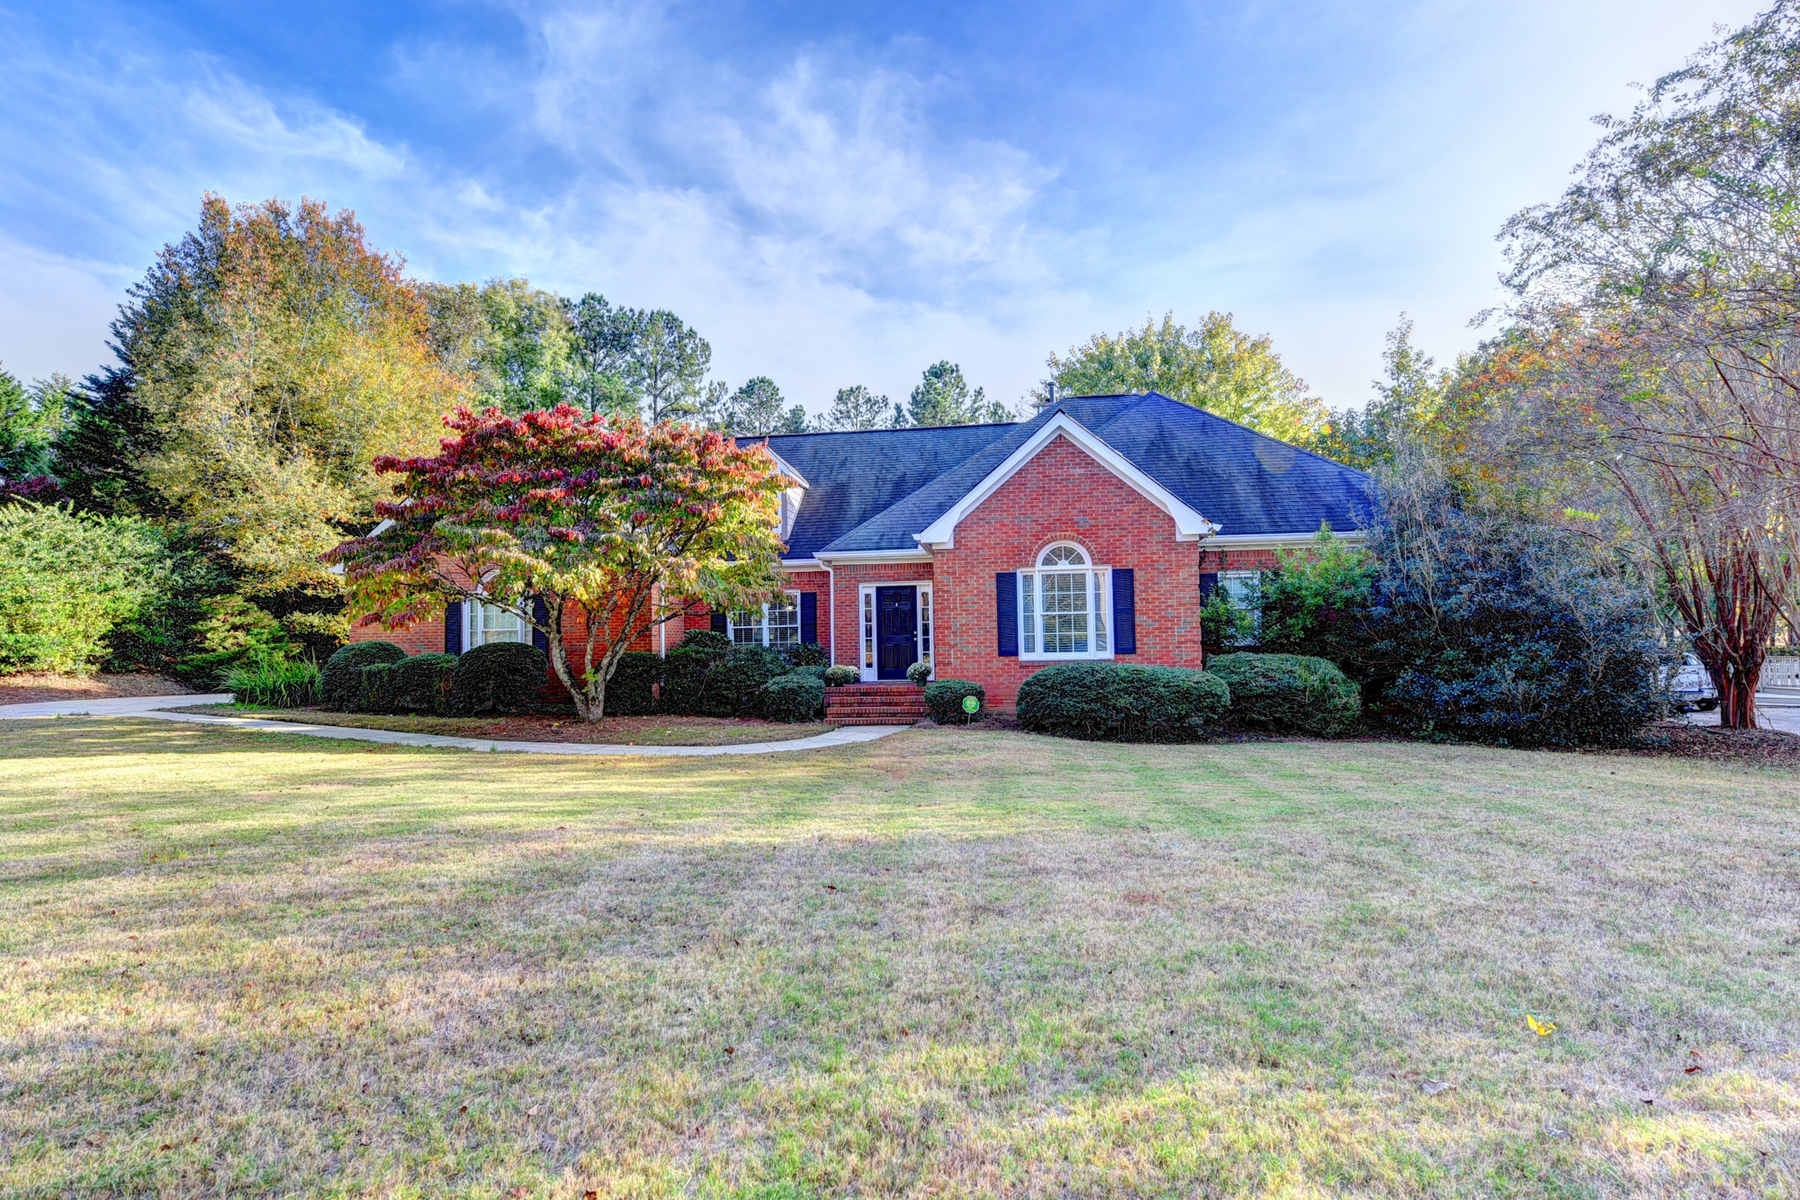 Single Family Home for Sale at The Best Of Everything At An Amazing Price 440 Clubfield Dr Roswell, Georgia 30075 United States